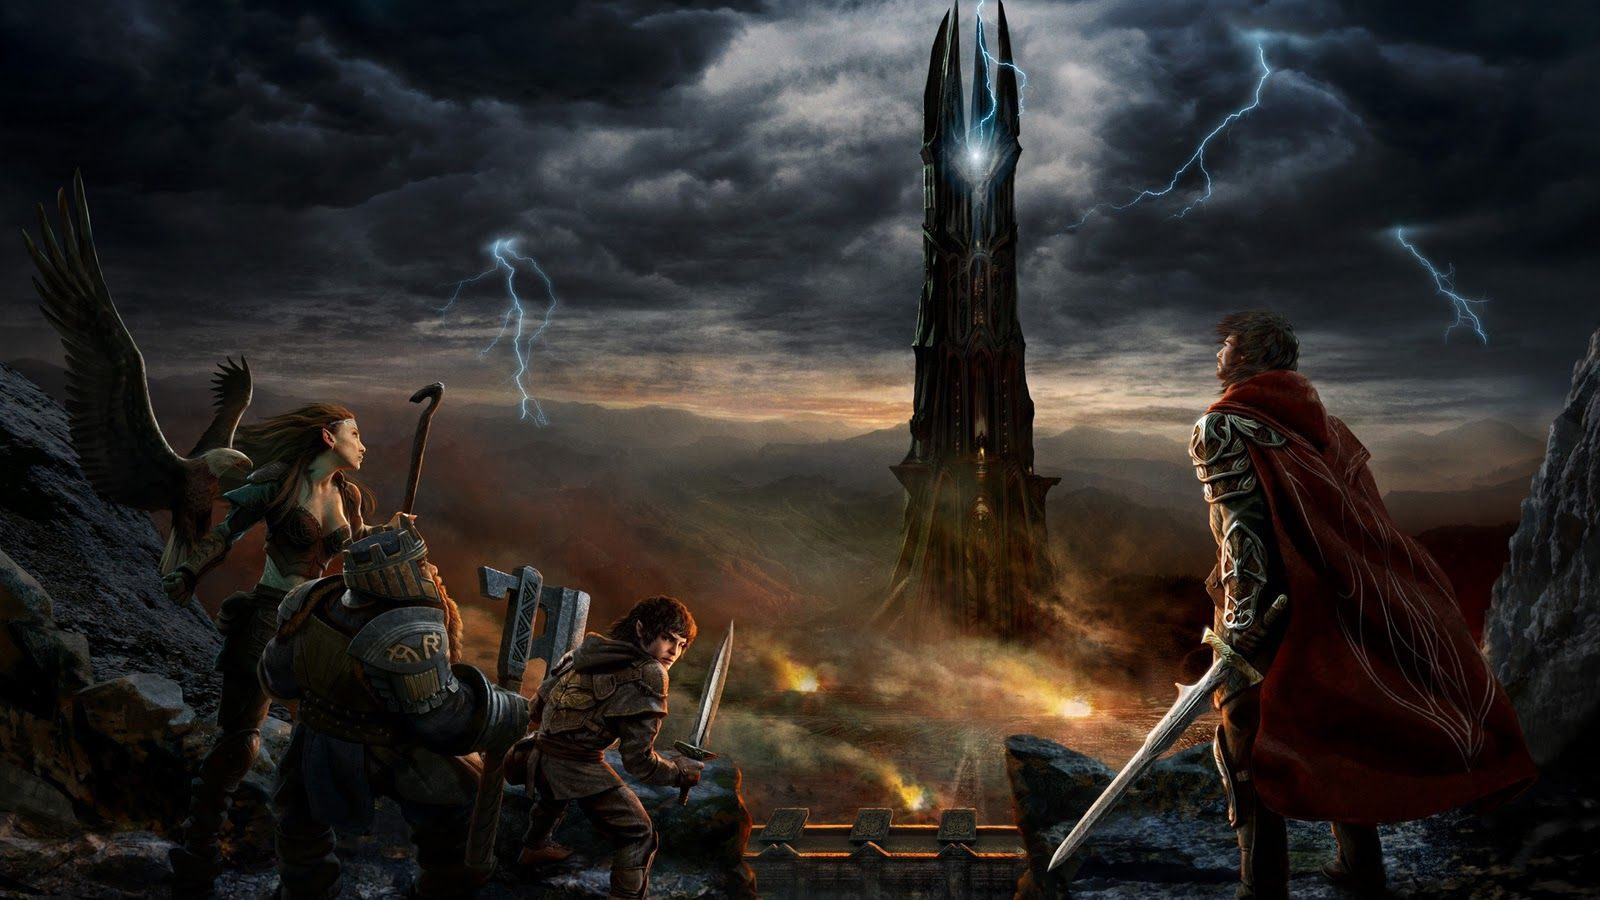 Free 3d Animated Wallpaper Thunder 3d Animated Wallpaper Tower 3d Animated Wallpaper 3d Animated Lord Of The Rings Shadow Of Mordor Fantasy Art